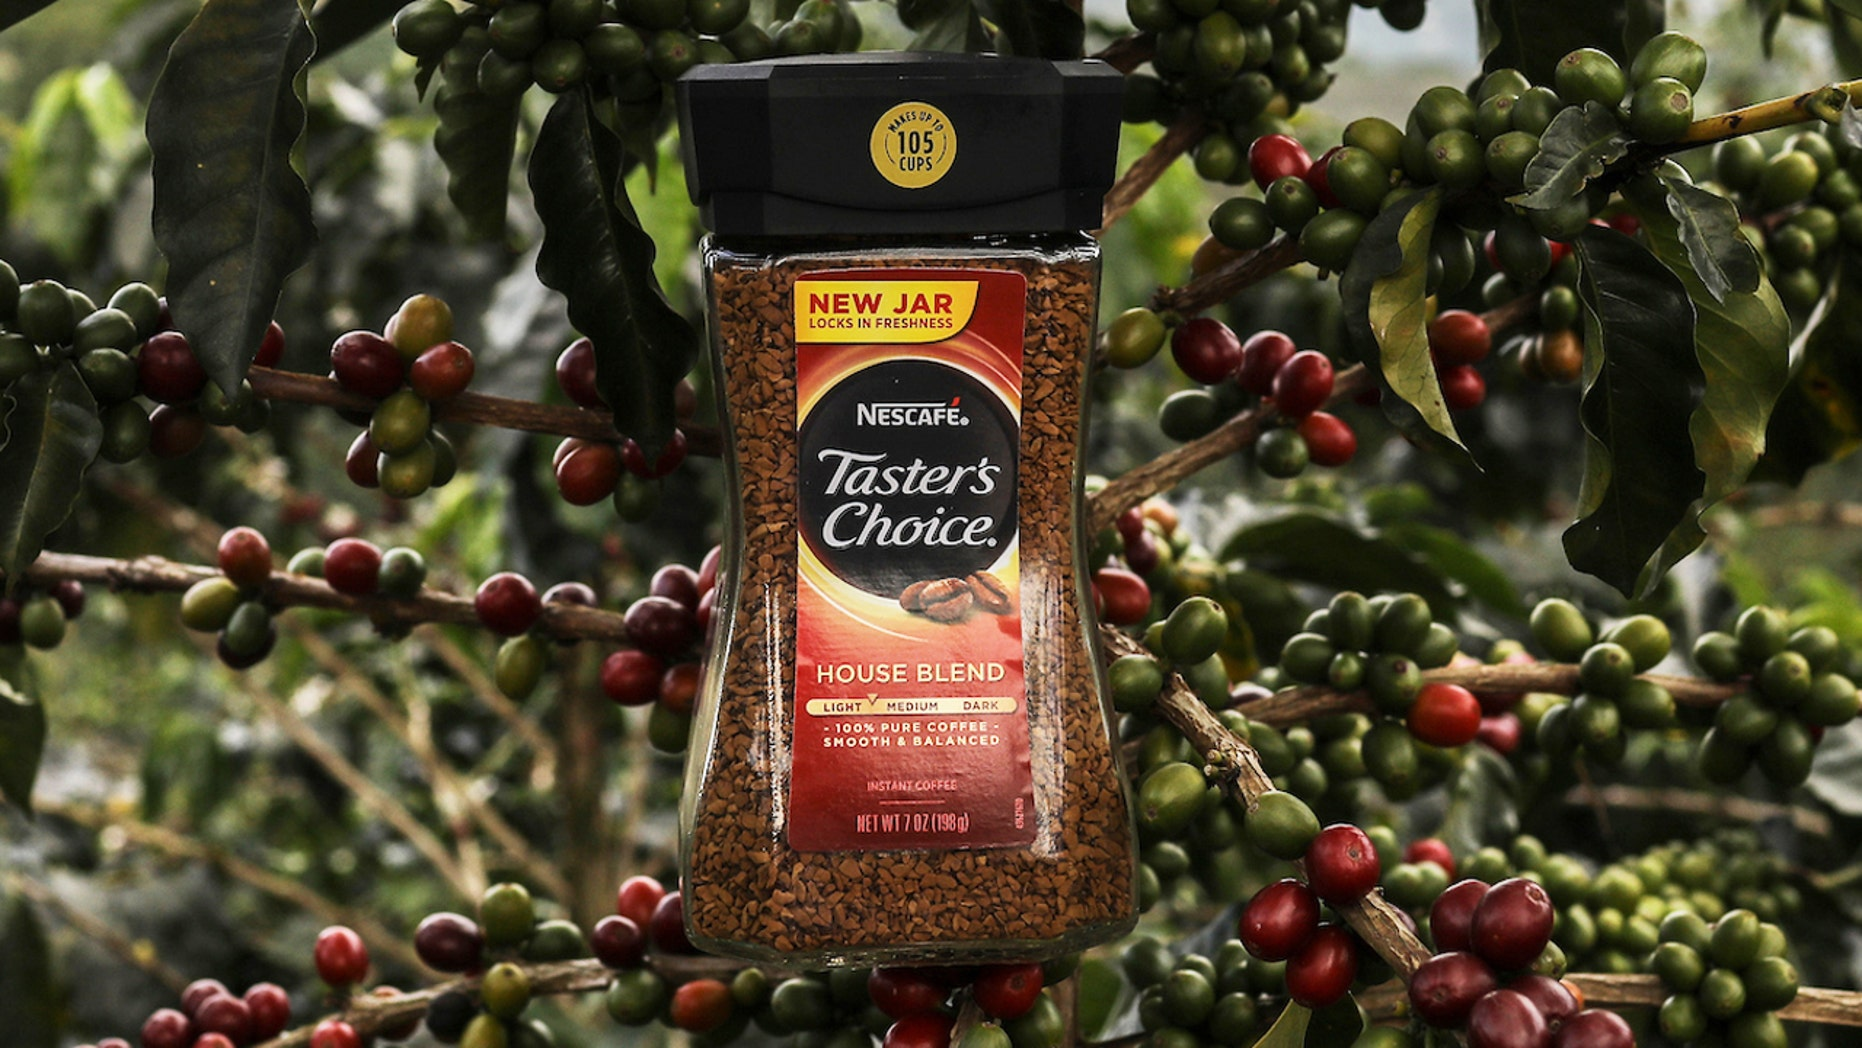 Nescafe is the world's largest producer of instant coffee crystals.